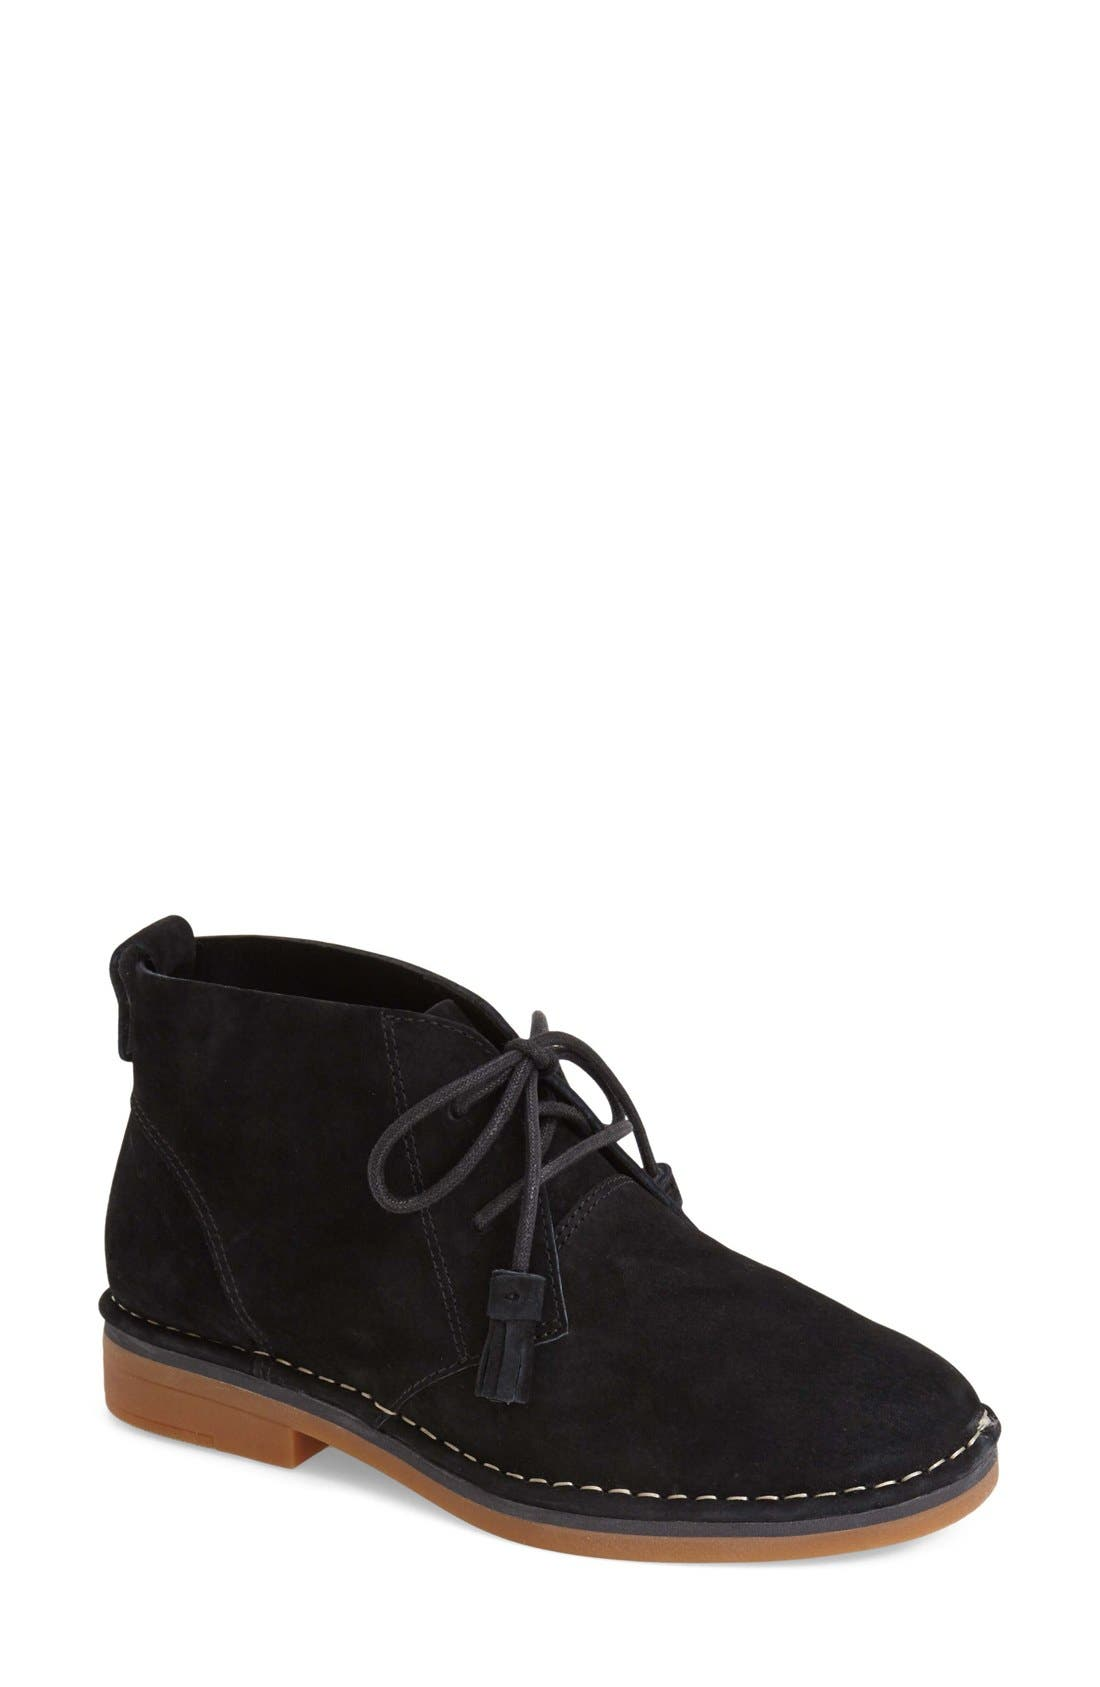 Hush Puppies Cyra Catelyn Chukka Boot, Black